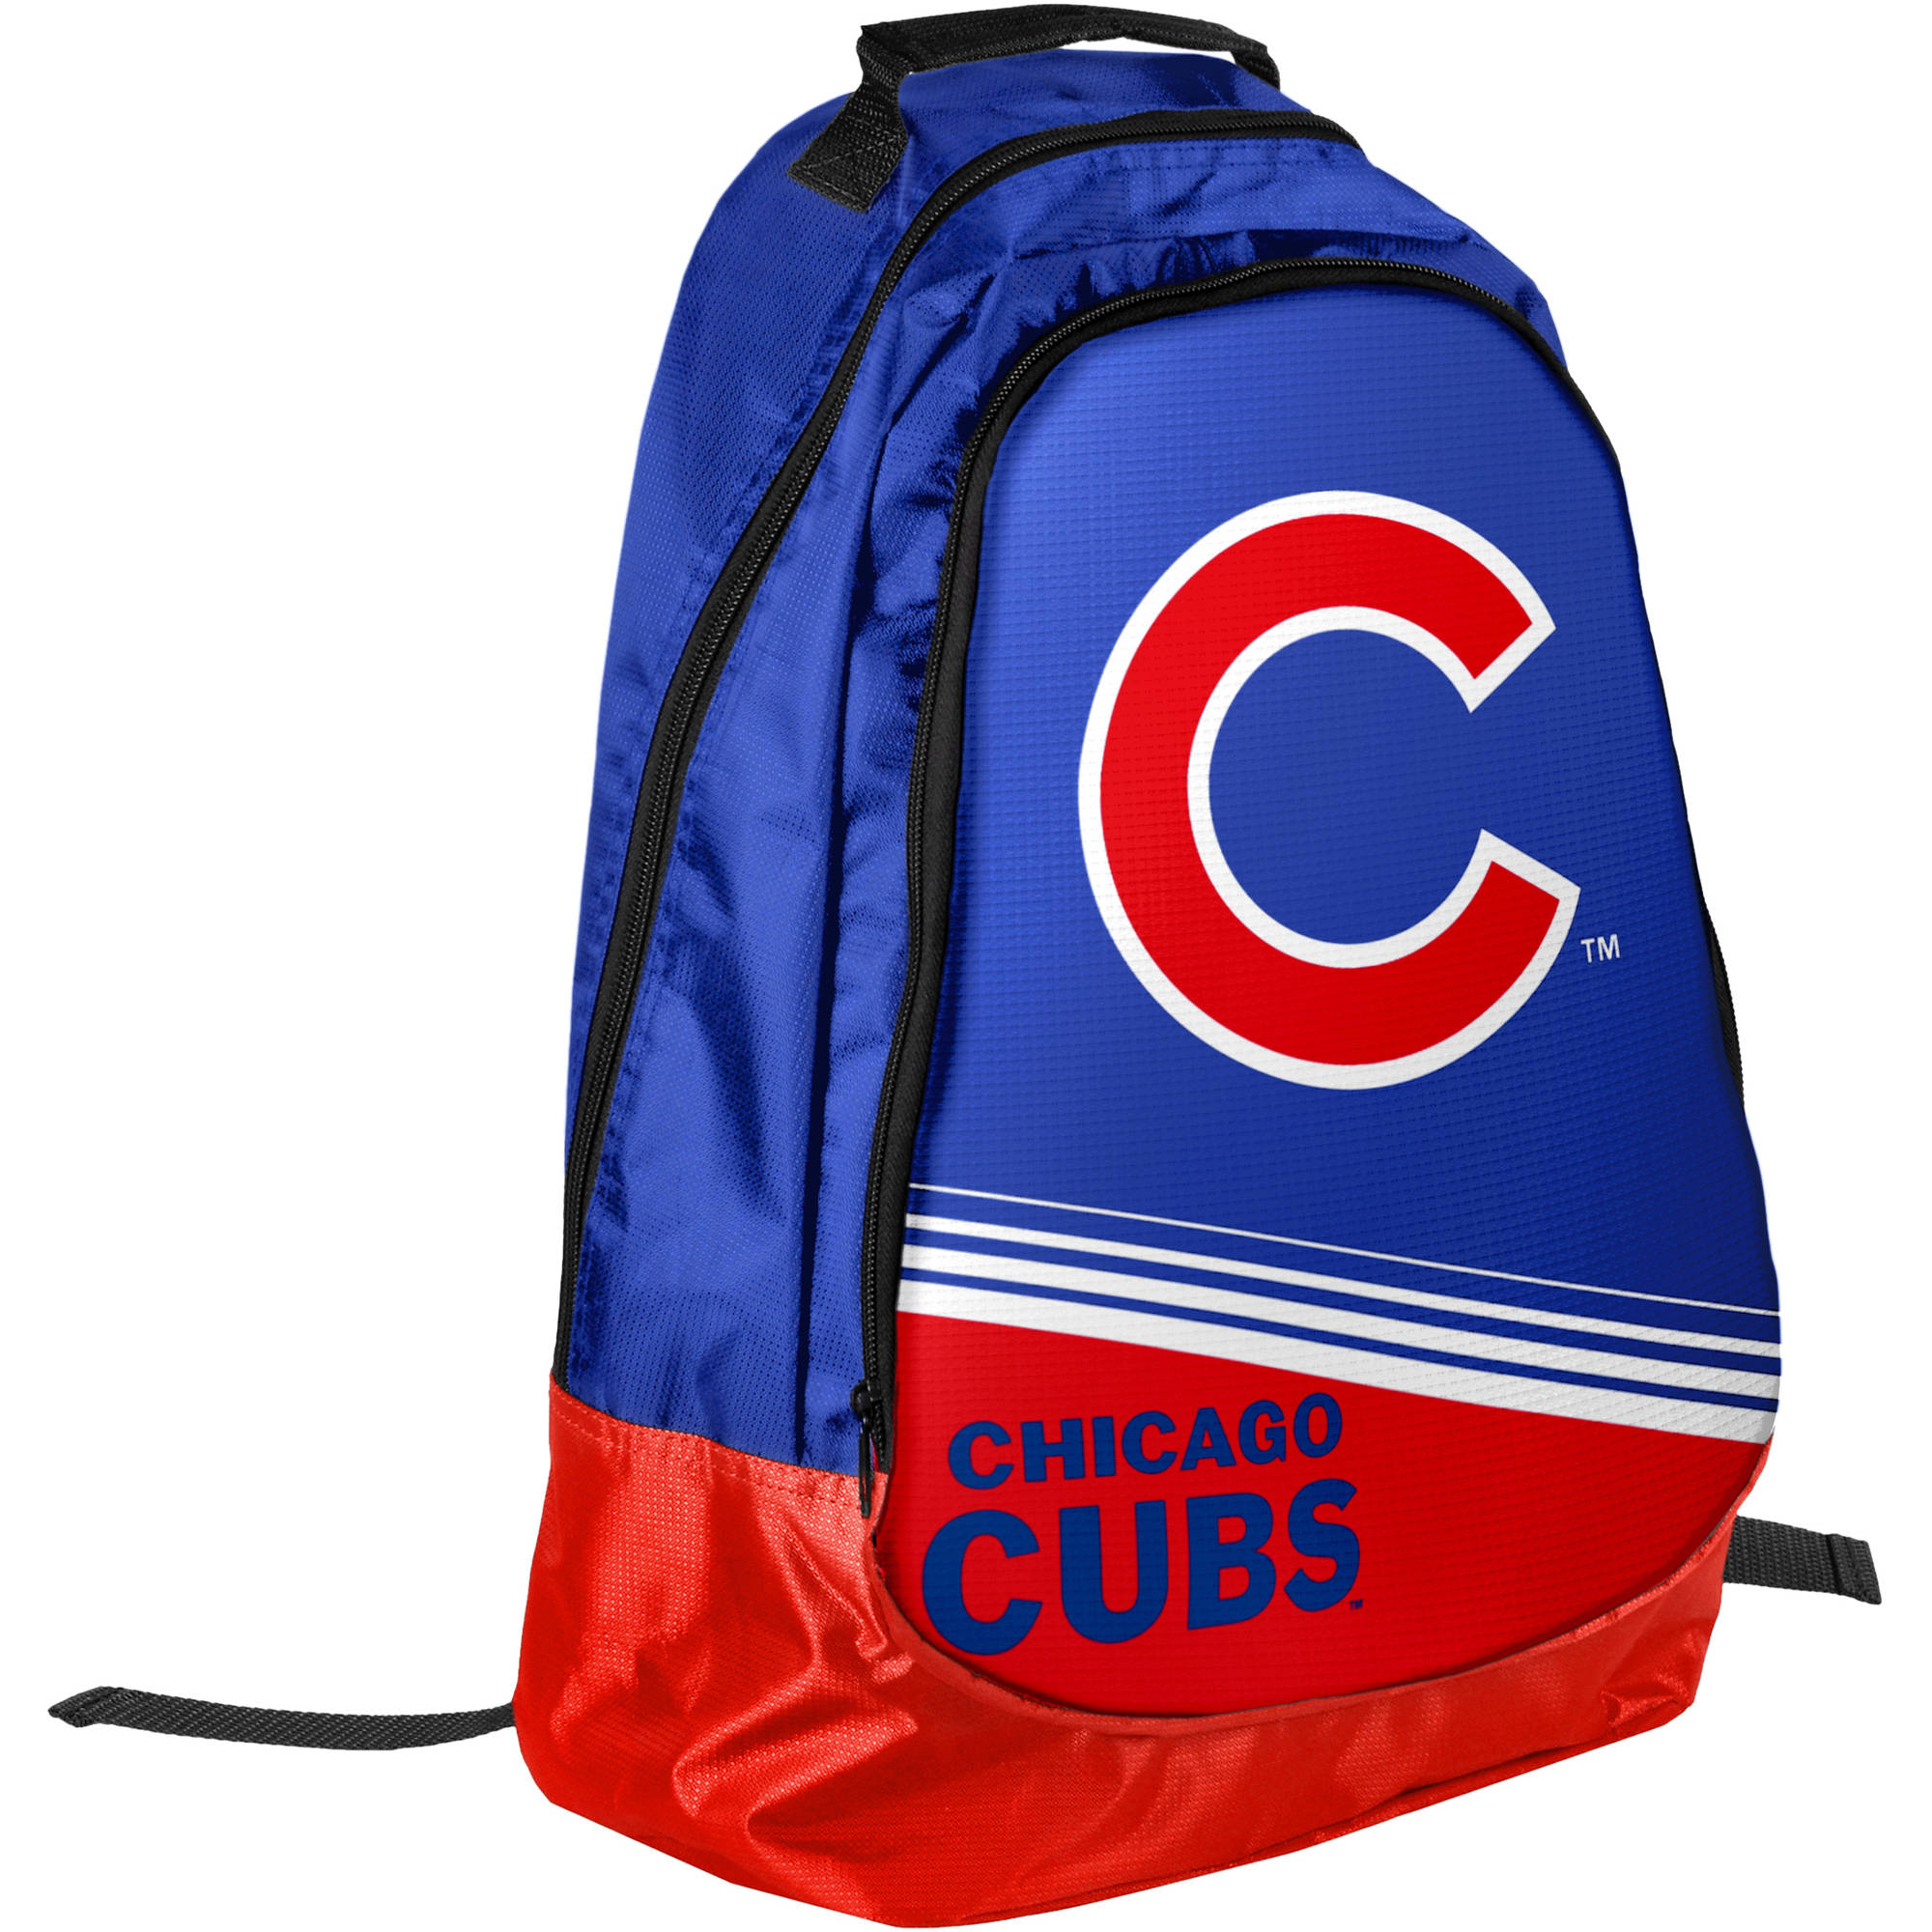 Chicago Cubs Official MLB Backpack Core Stripe Bag by Forever Collectibles 054615